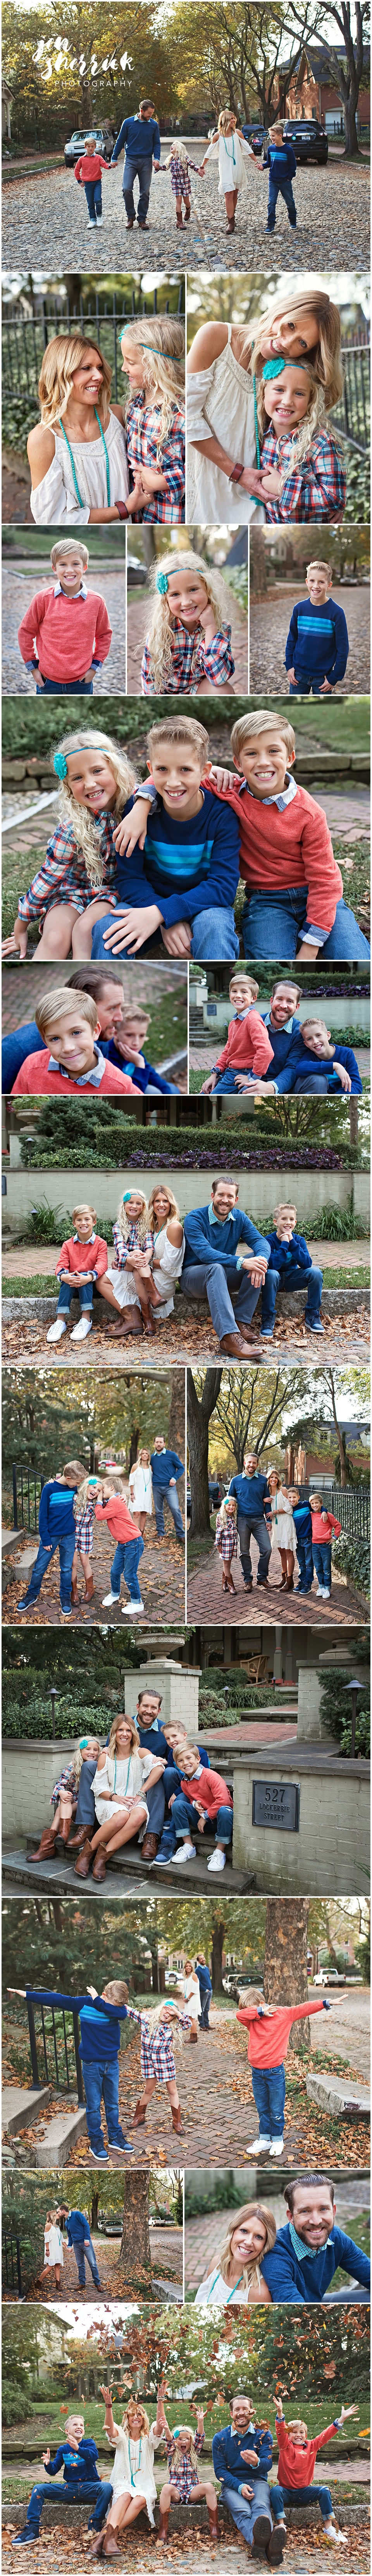 Annual Photo Session with the Sinsabaugh Family